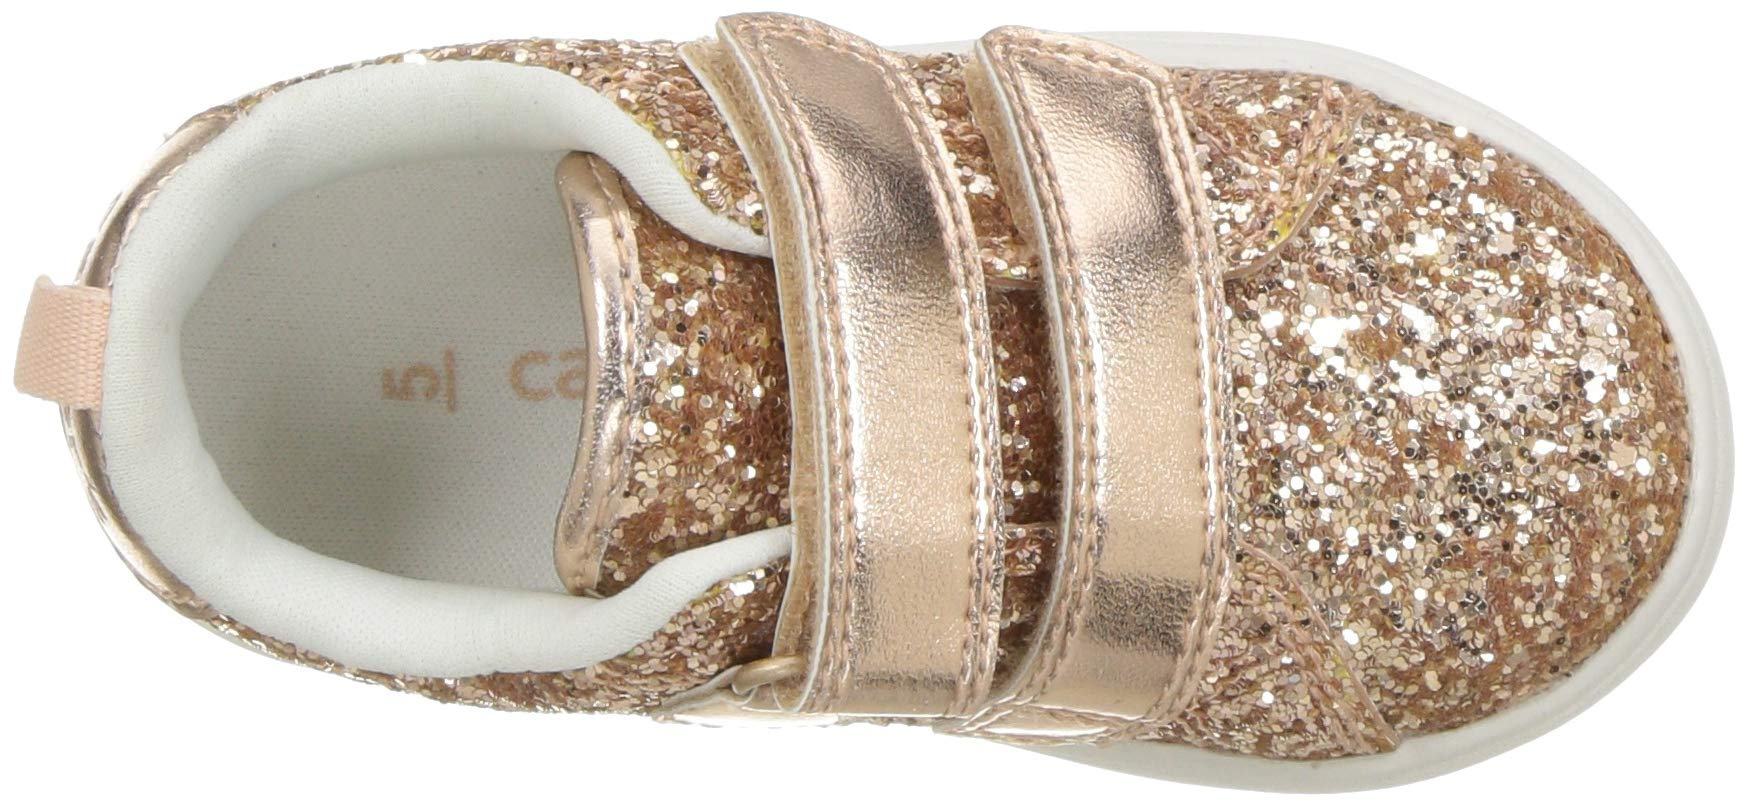 carter's Girls' Andee2 Rosegold Casual Sneaker, Rose Gold, 11 M US Little Kid by Carter's (Image #8)